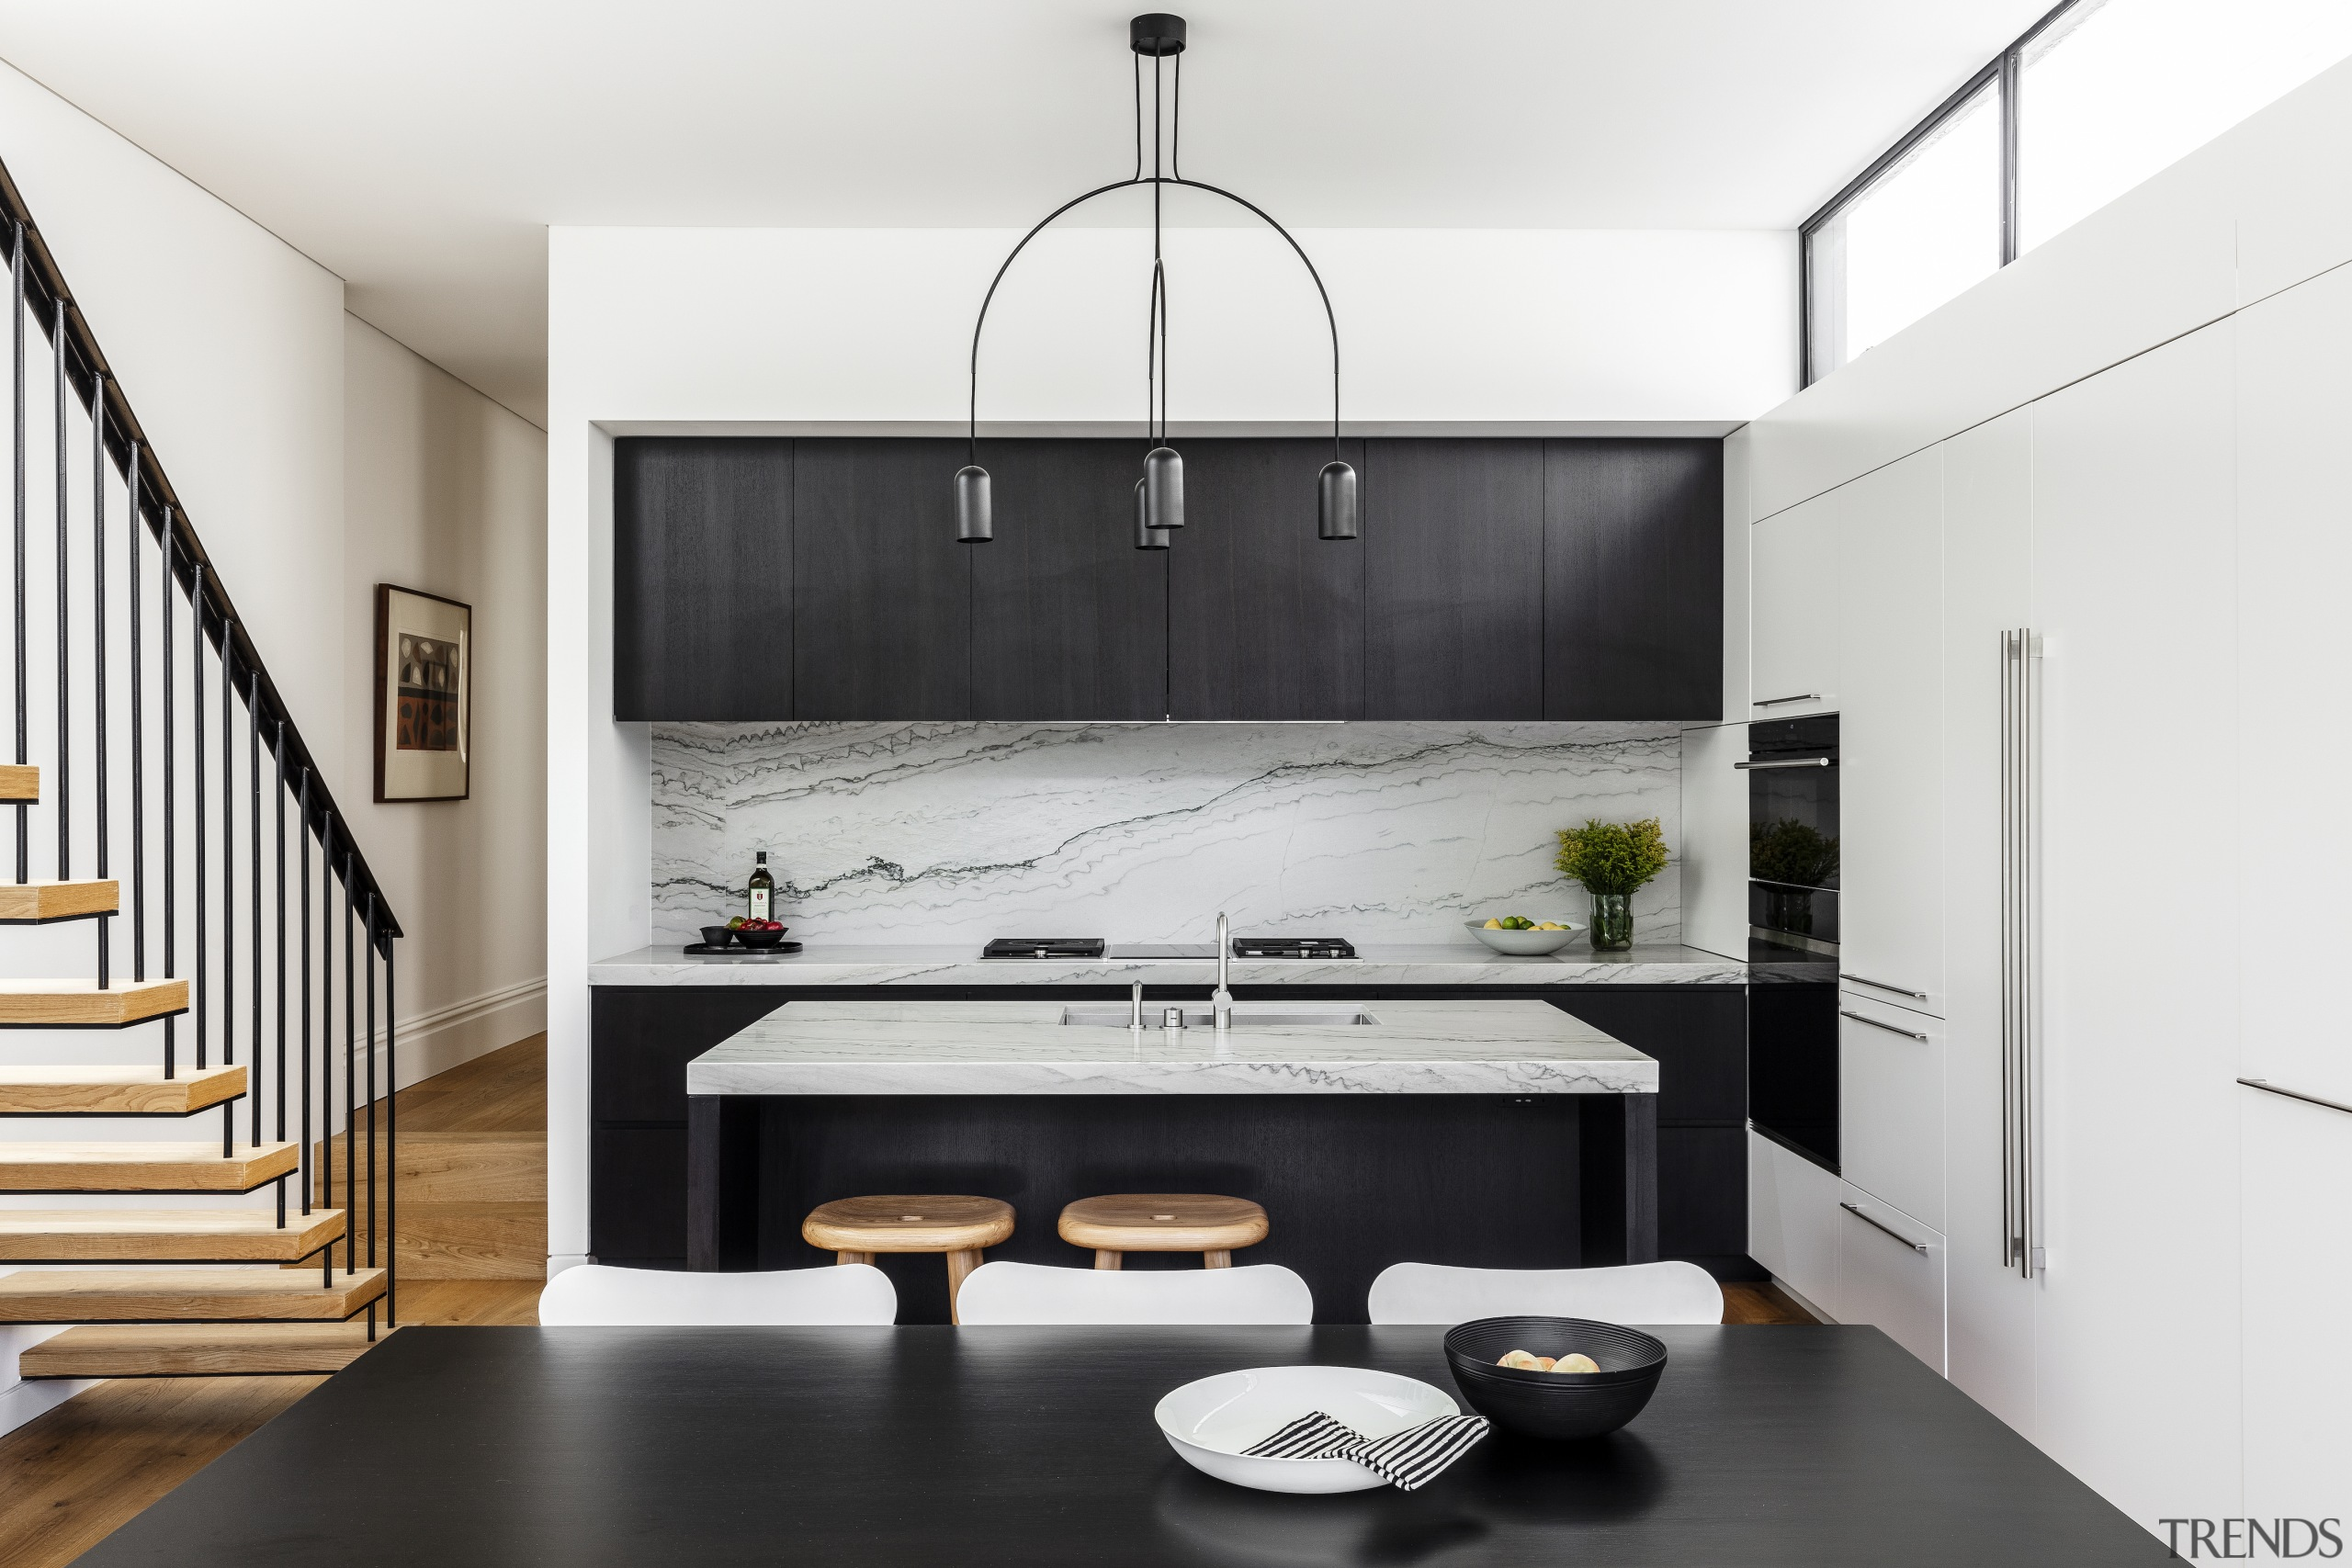 The owner really enjoys cooking so was particular architecture, bathroom, black-and-white, building, cabinetry, ceiling, countertop, floor, flooring, furniture, home, house, interior design, kitchen, material property, property, room, sink, tile, white, white